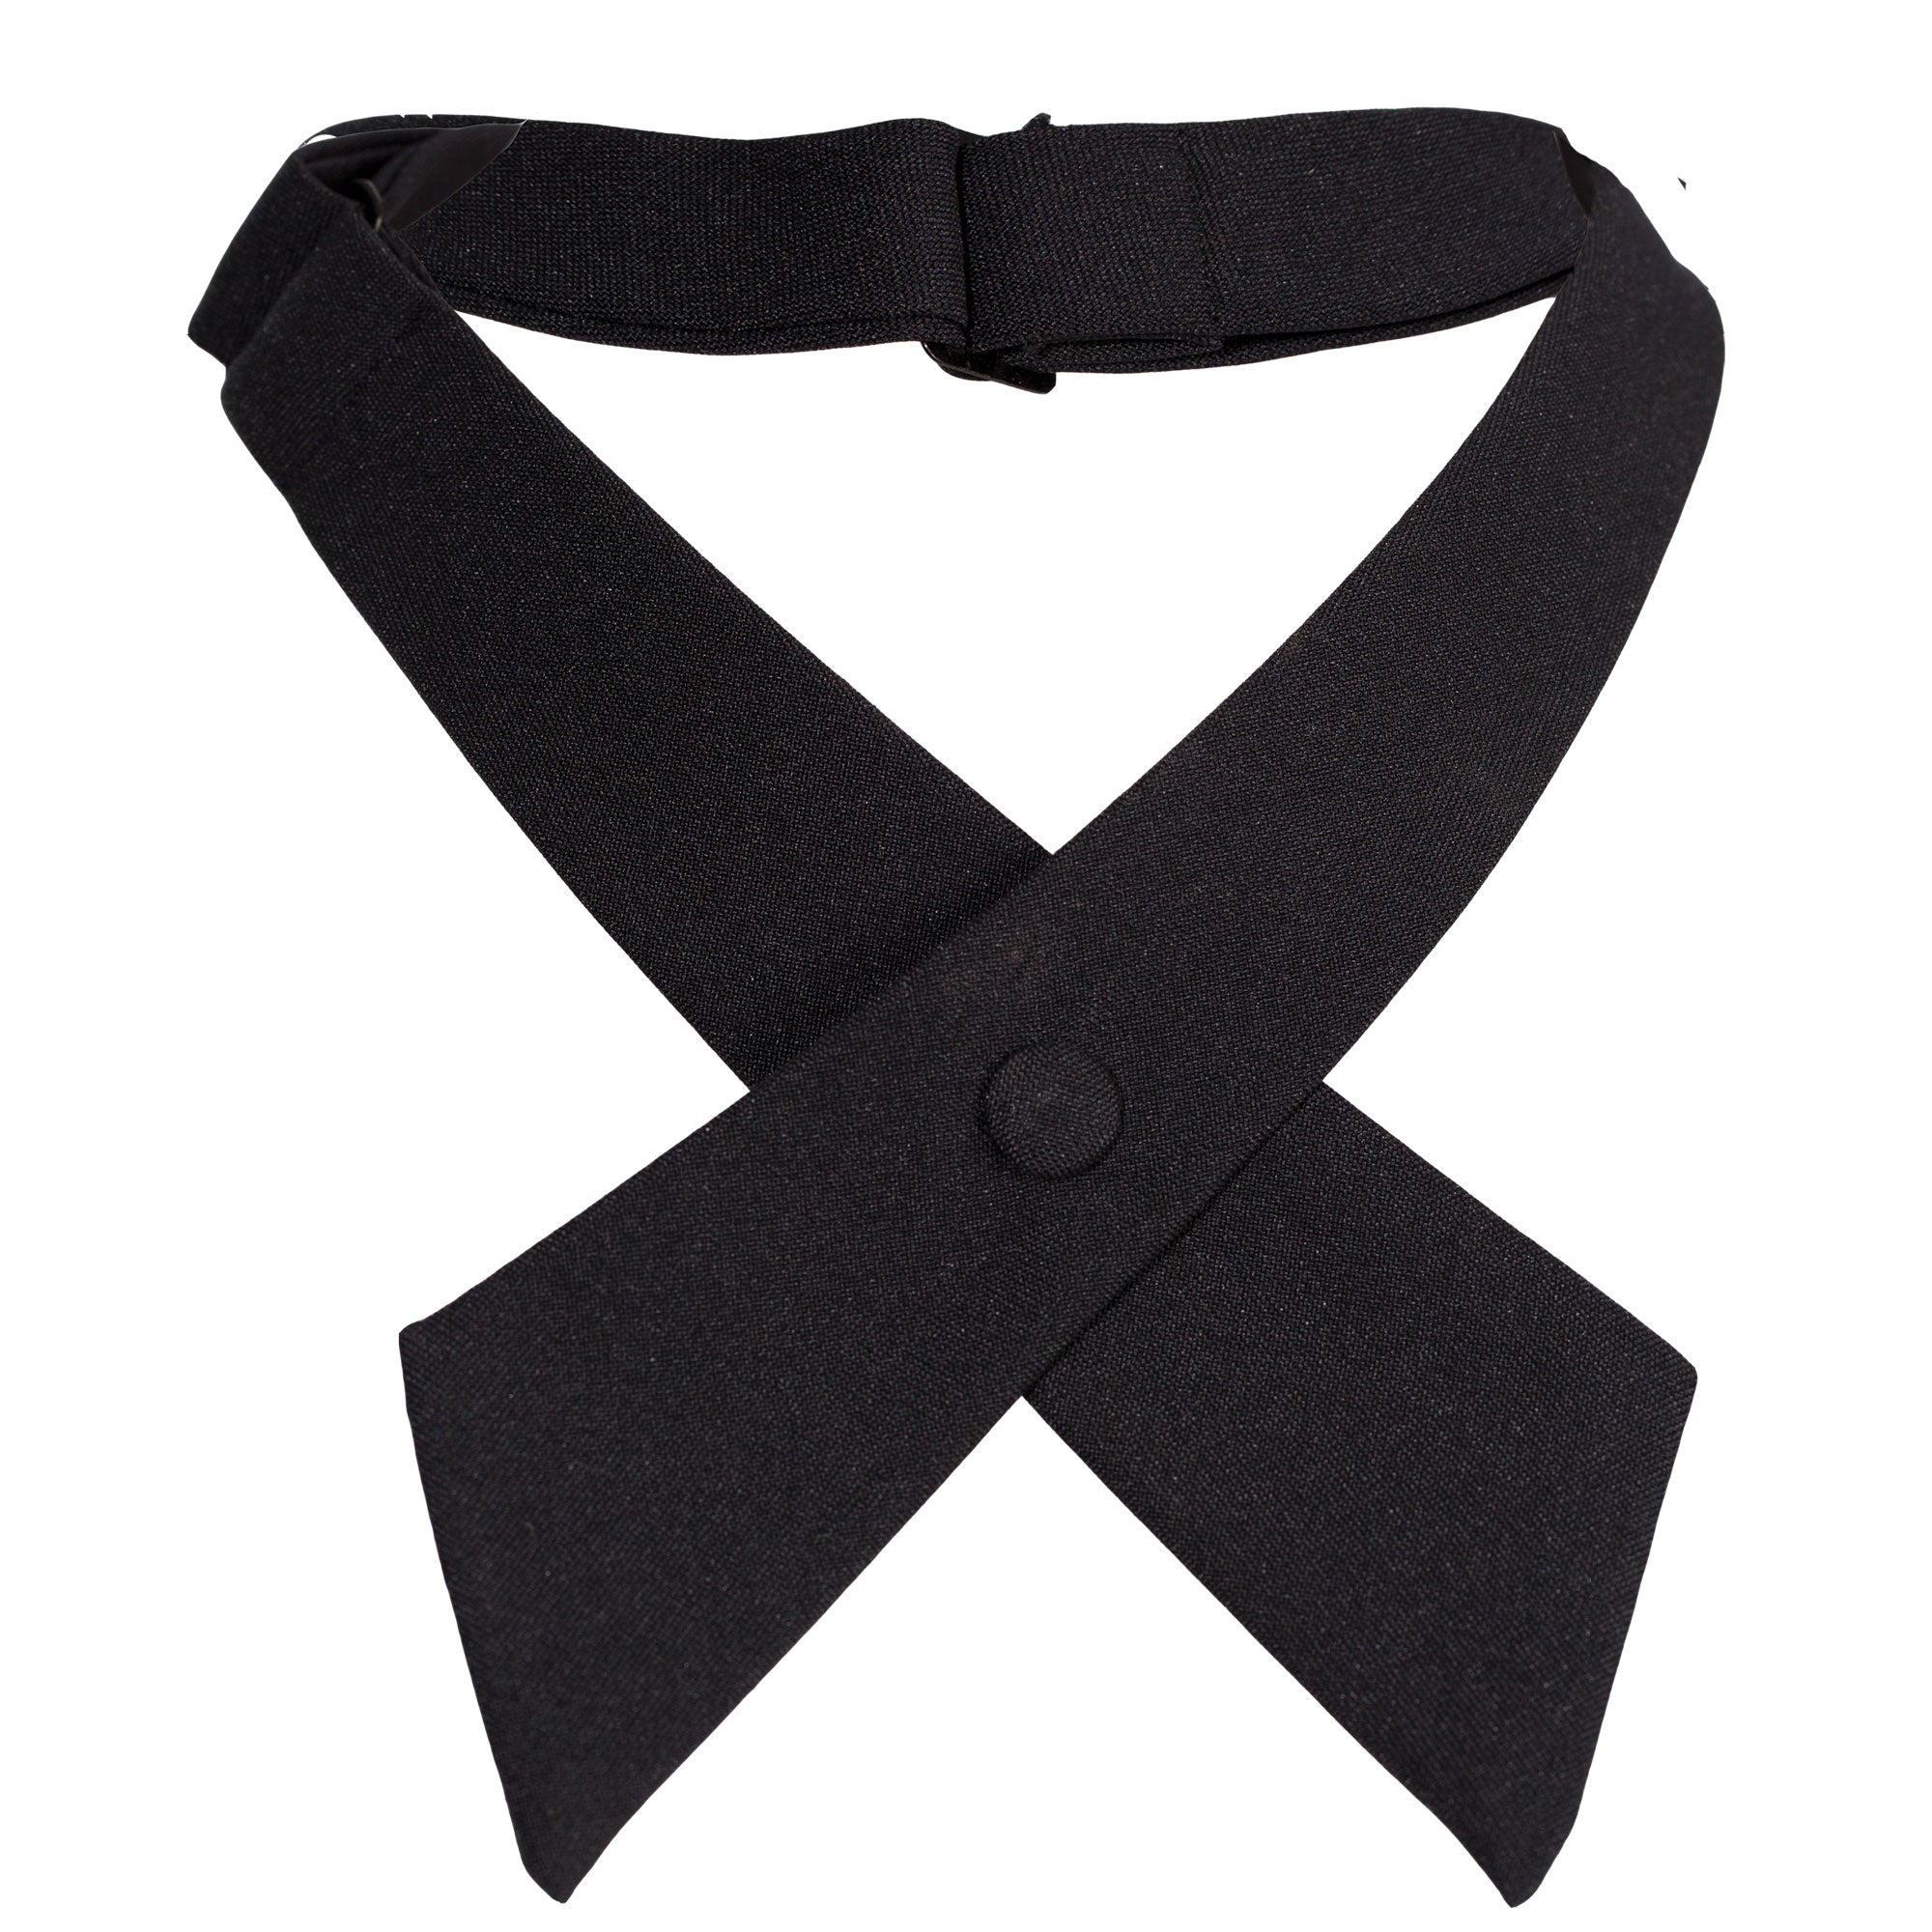 Tact Squad TIECO Women's Cross-Over Tie